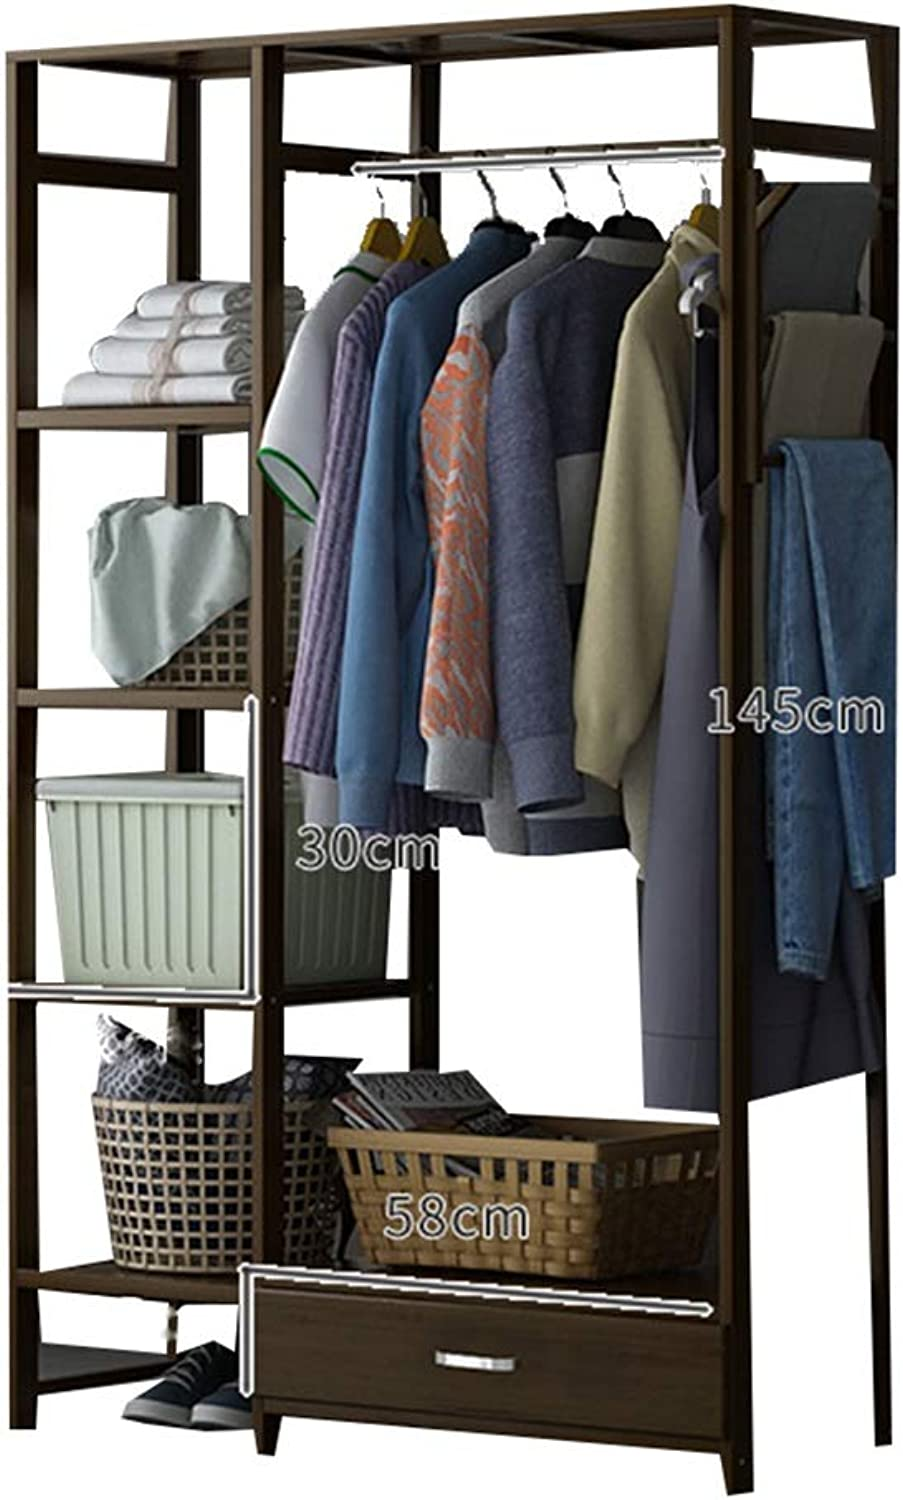 JIAYING Freestanding Garment Rack,Standing Multi-Functional Coat and shoes Rack,Bamboo Organizer Closet with 4-Tier Shelves and Drawer for Indoor Bedroom (Size   92×30×145CM)